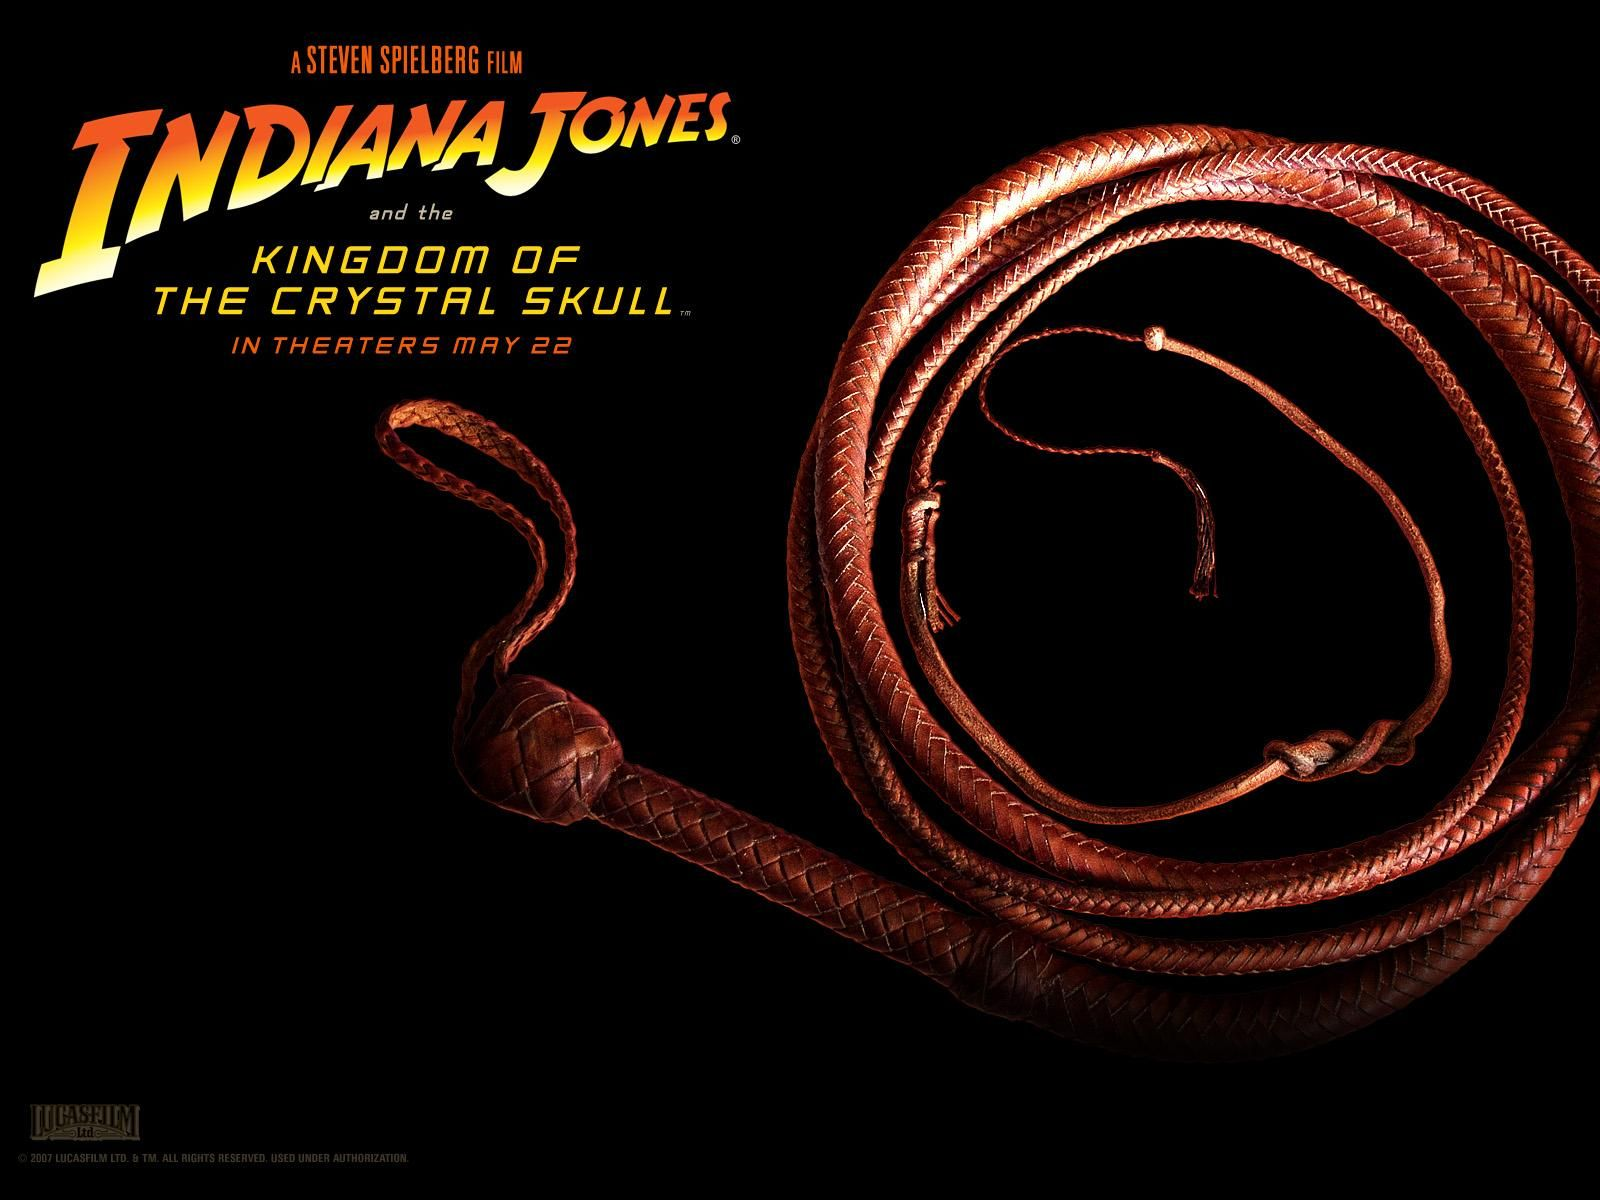 Hd wallpaper zone - 5 Indiana Jones And The Last Crusade Hd Wallpapers Backgrounds Wallpaper